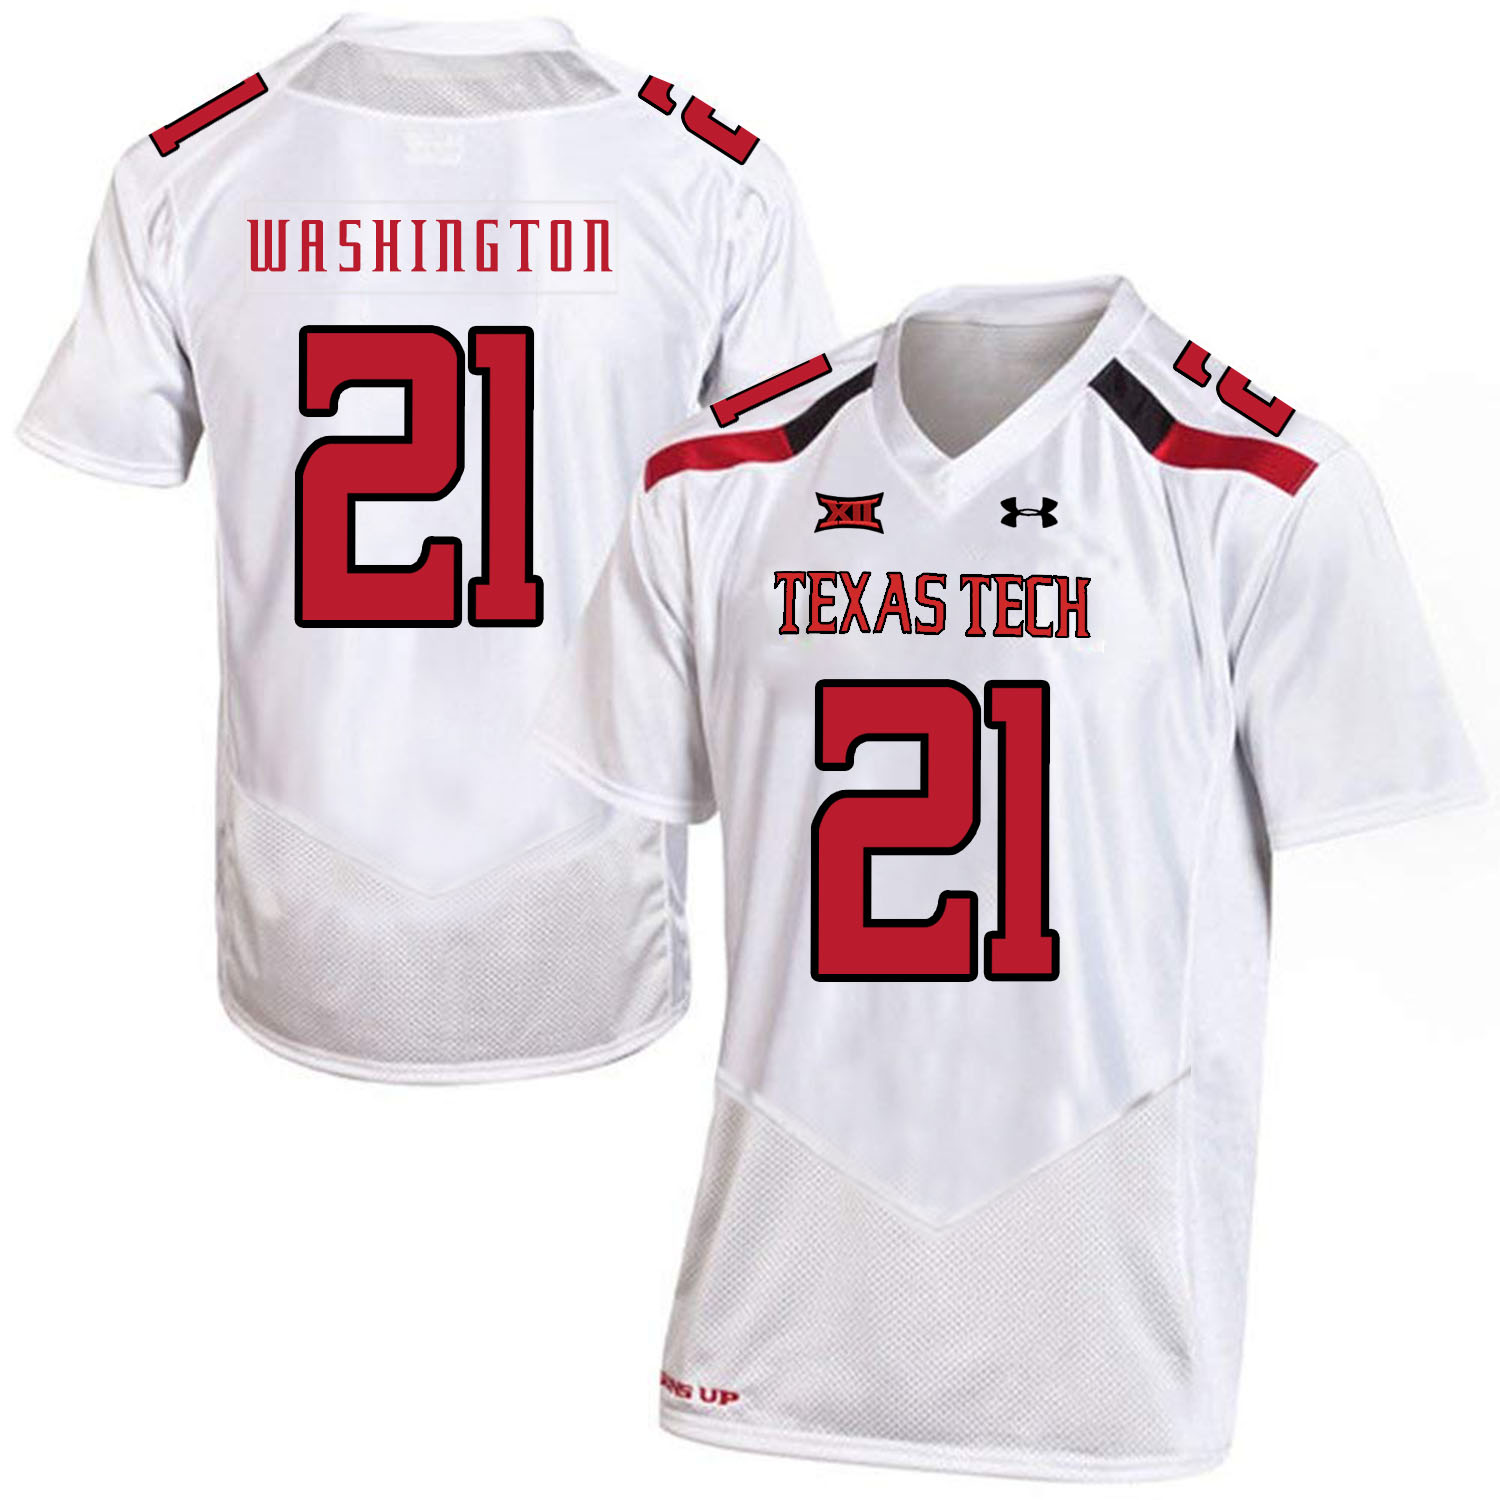 Texas Tech Red Raiders 21 DeAndre Washington White College Football Jersey